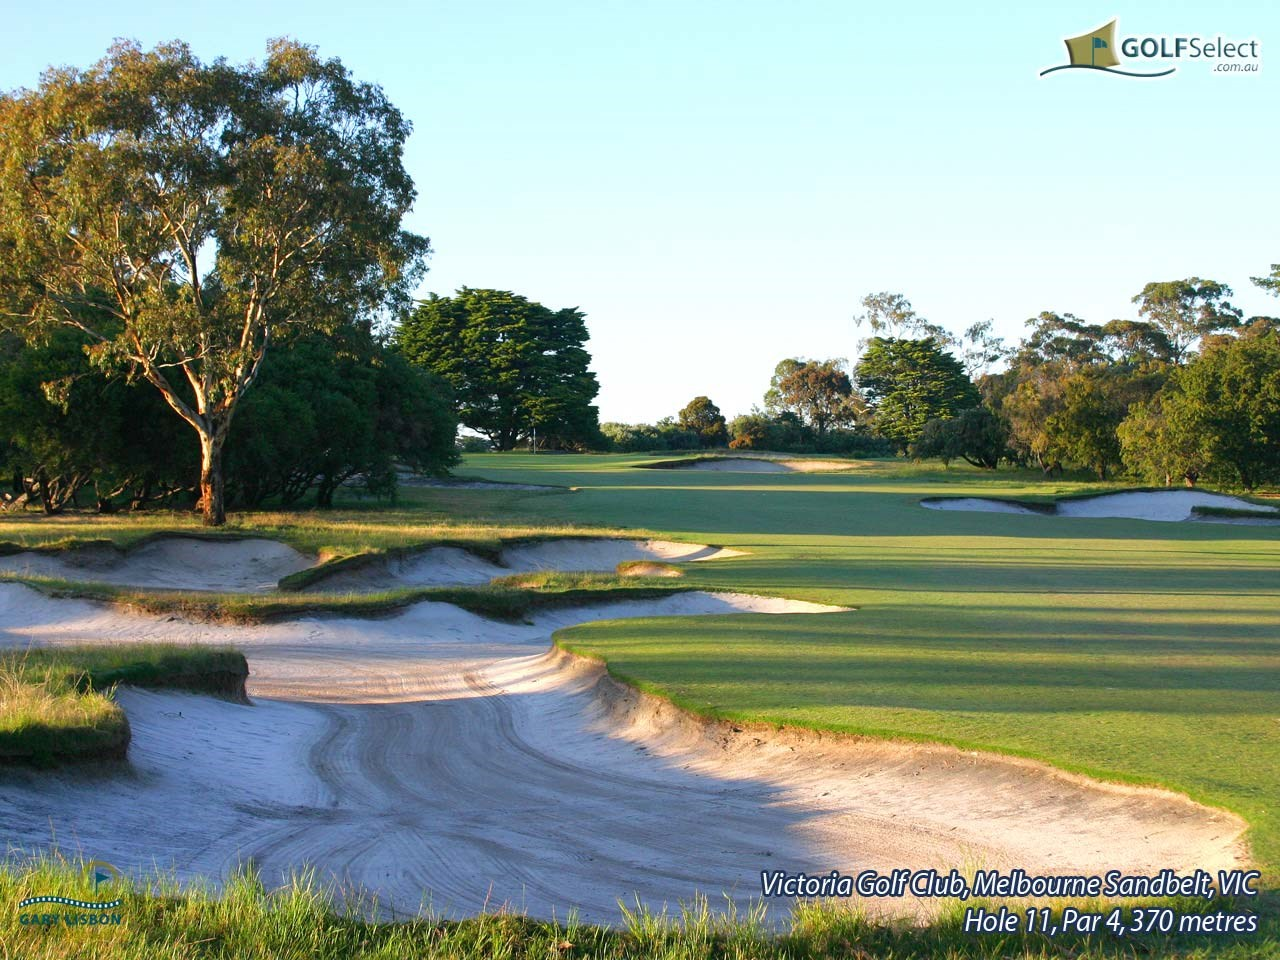 Victoria Golf Club Hole 11, Par 4, 370 metres